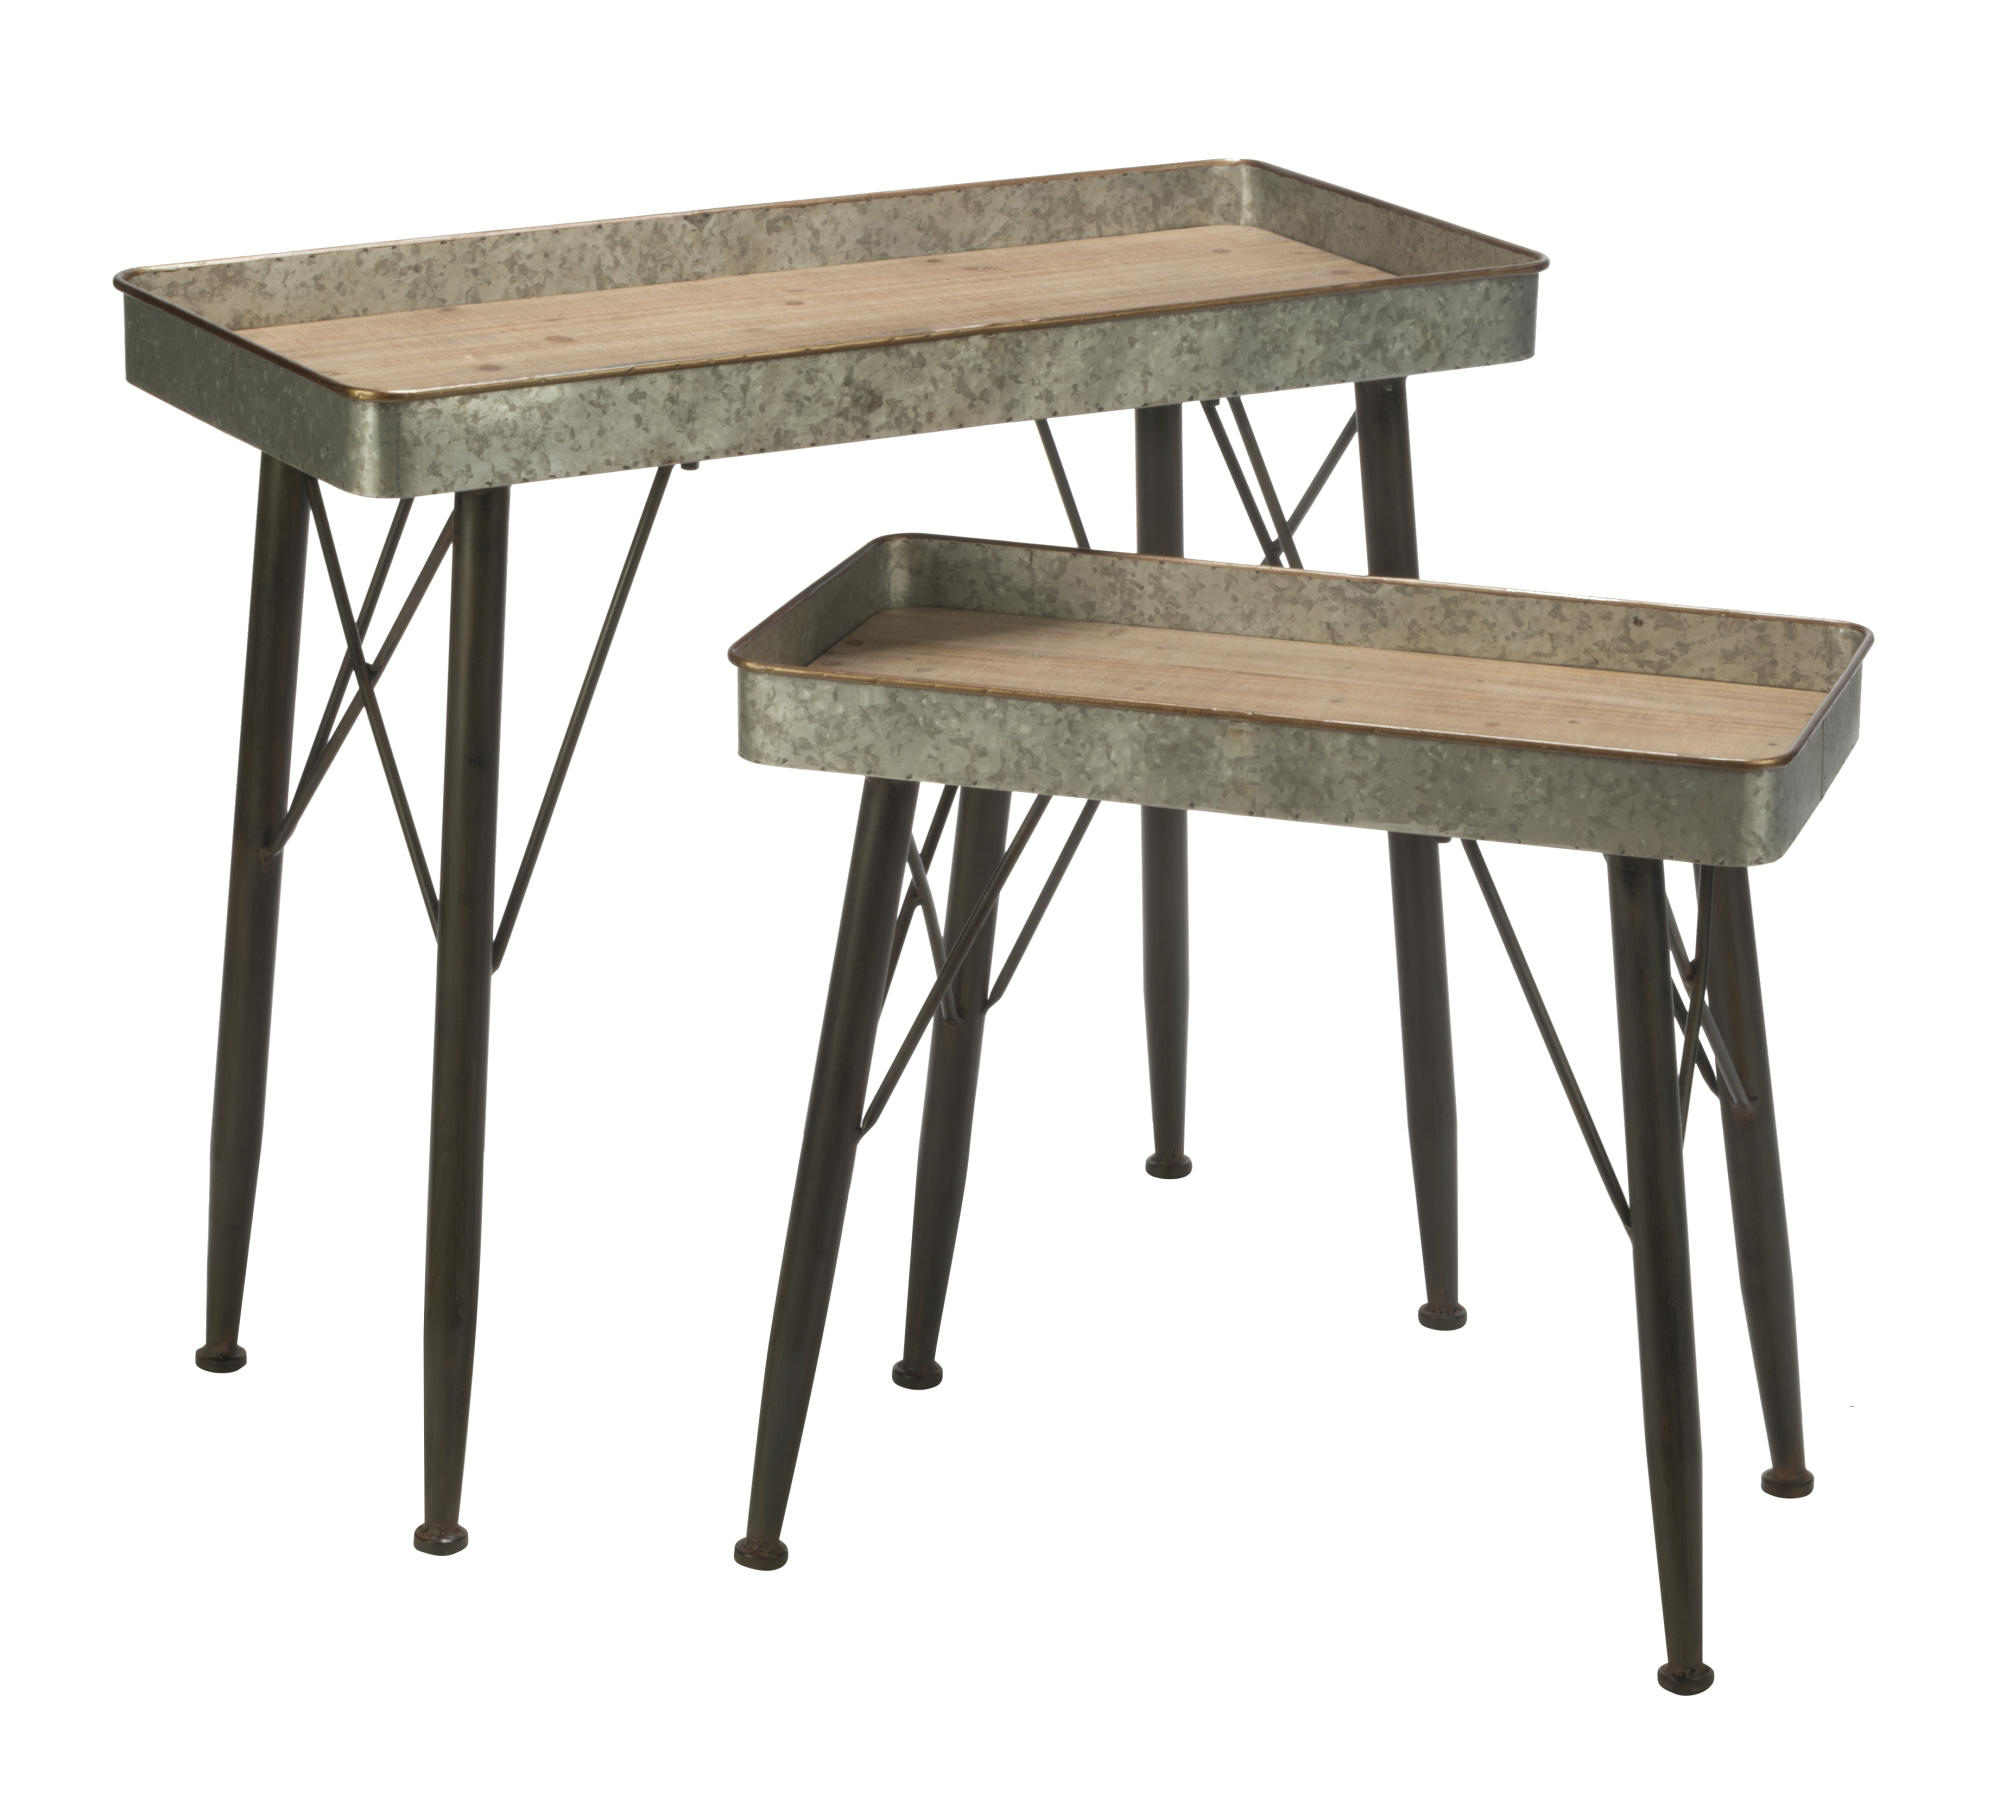 set farmhouse accent tables tripar international inc table teen desk tall side with storage inch deep console small red end dining plate mat thin corner distressed narrow acrylic